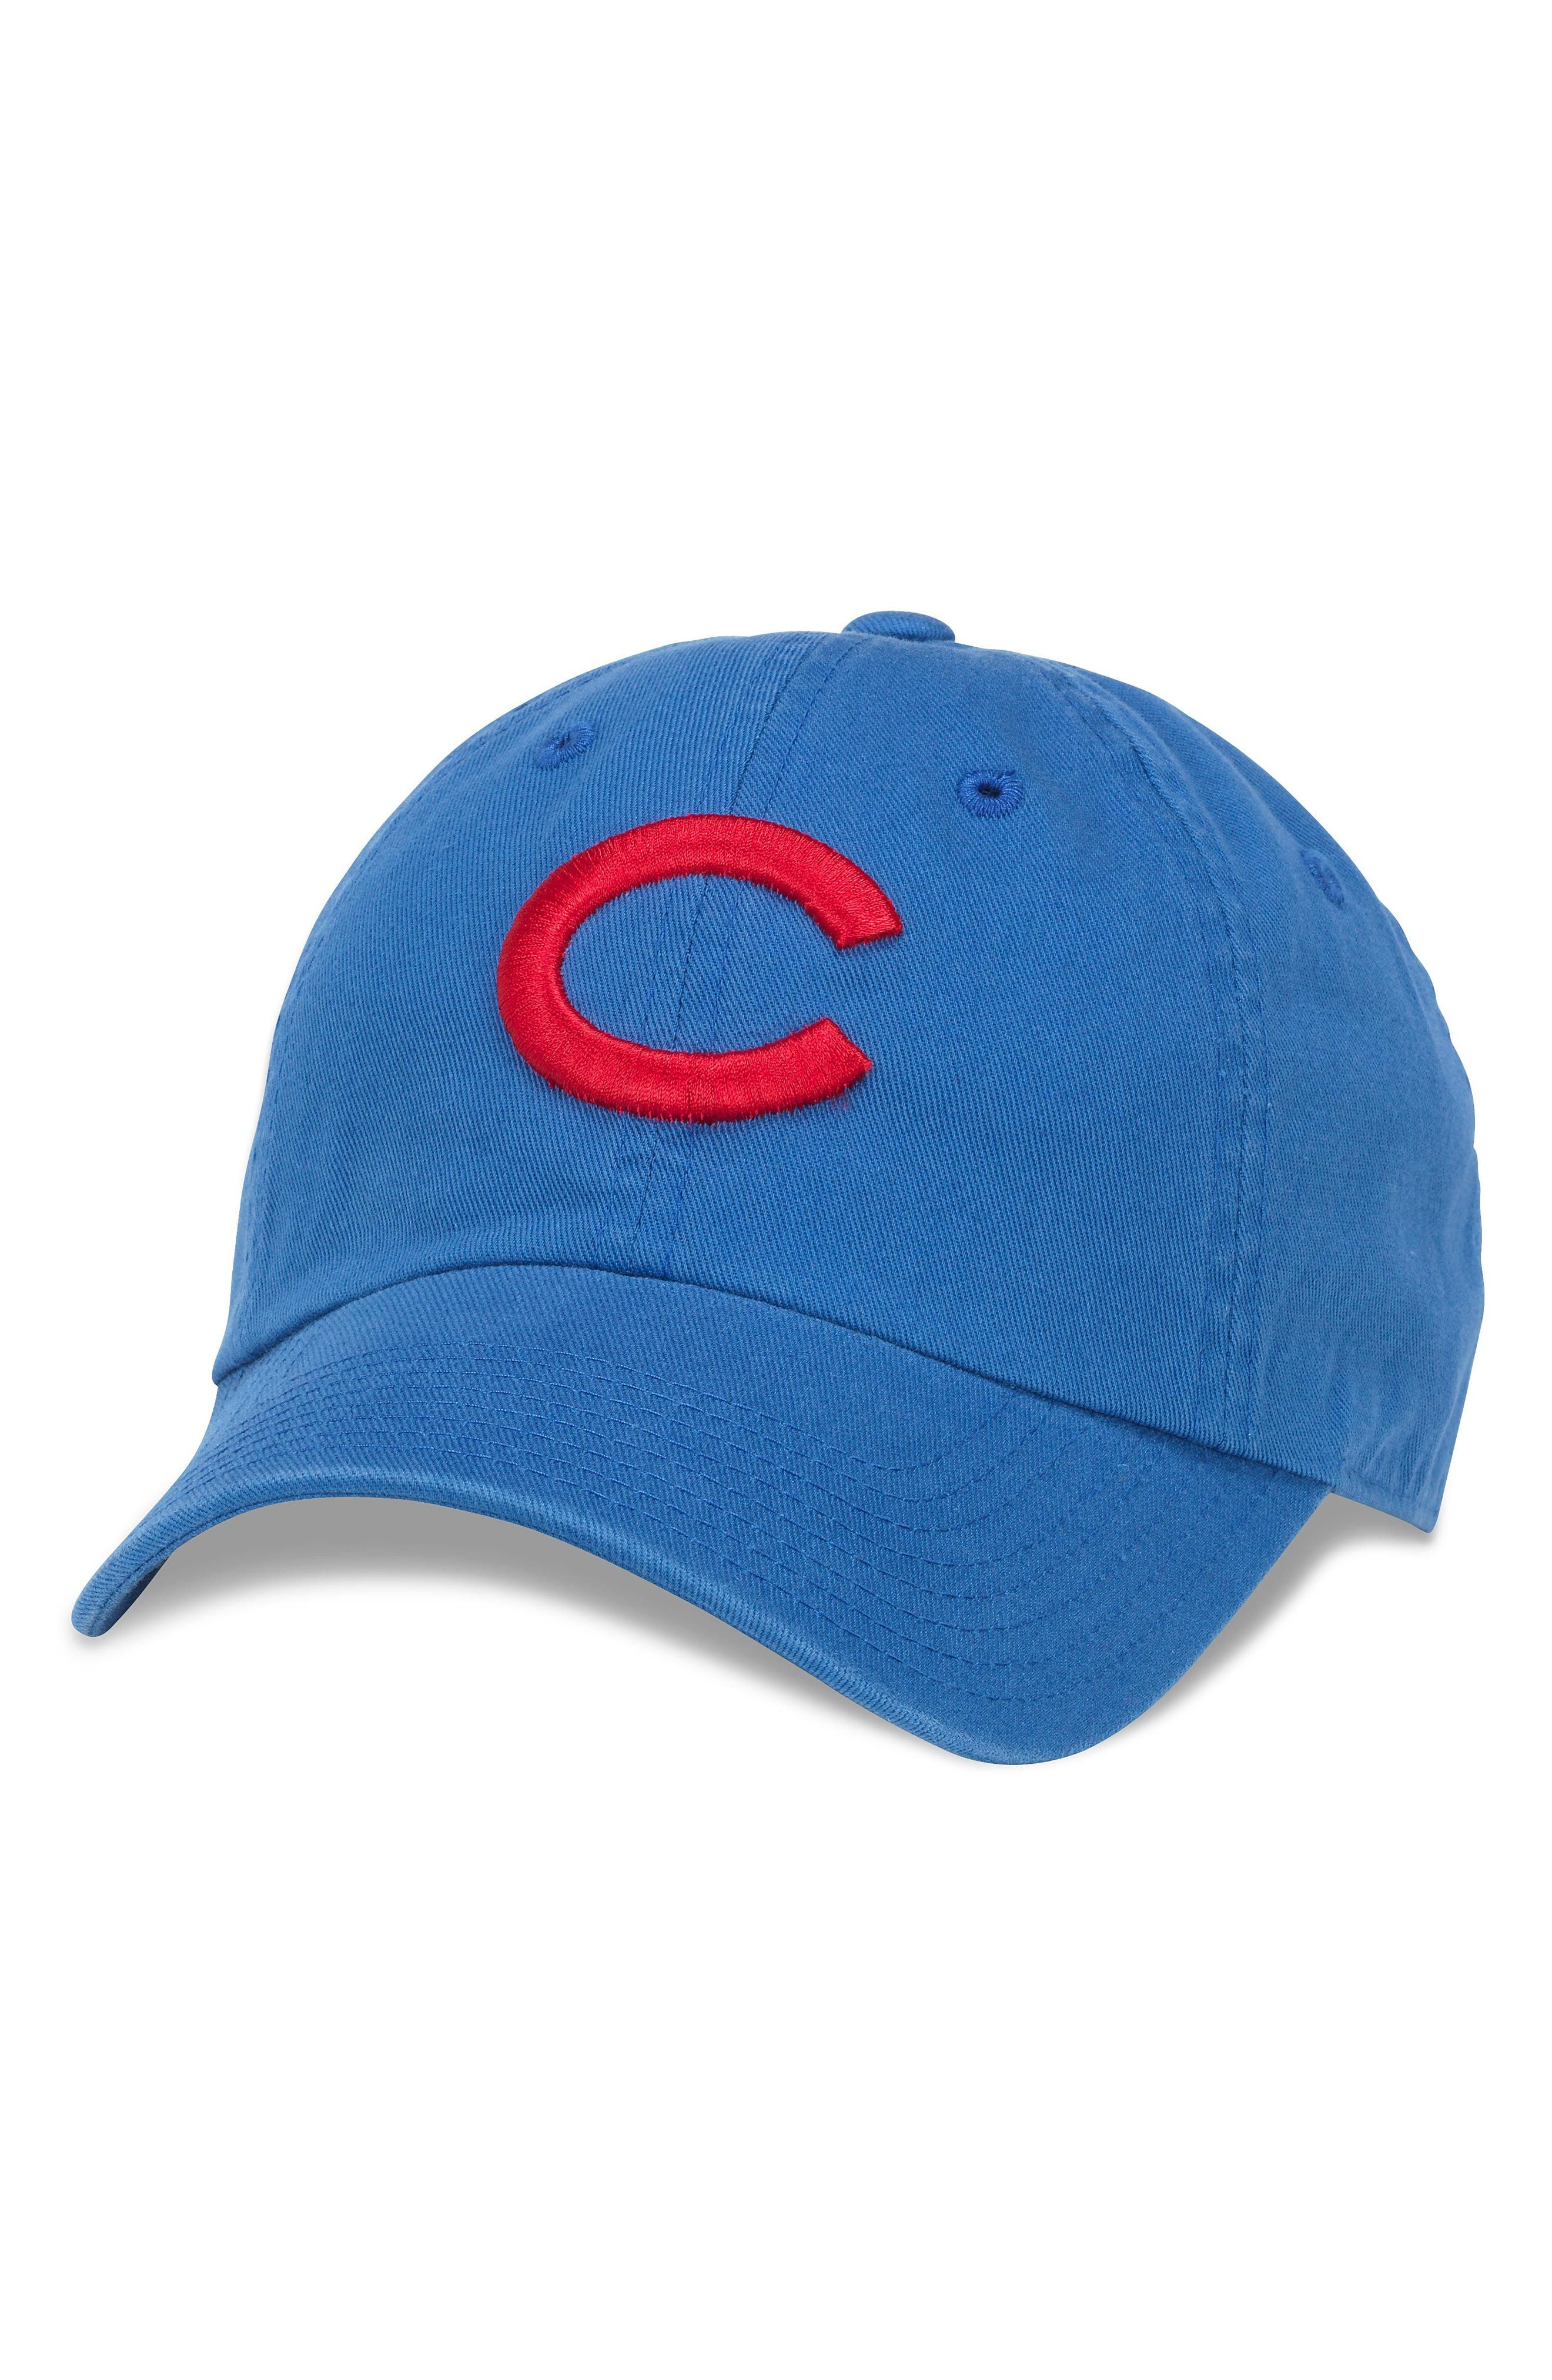 1938 Chicago Cubs Southpaw Ball Cap,                             Main thumbnail 1, color,                             450